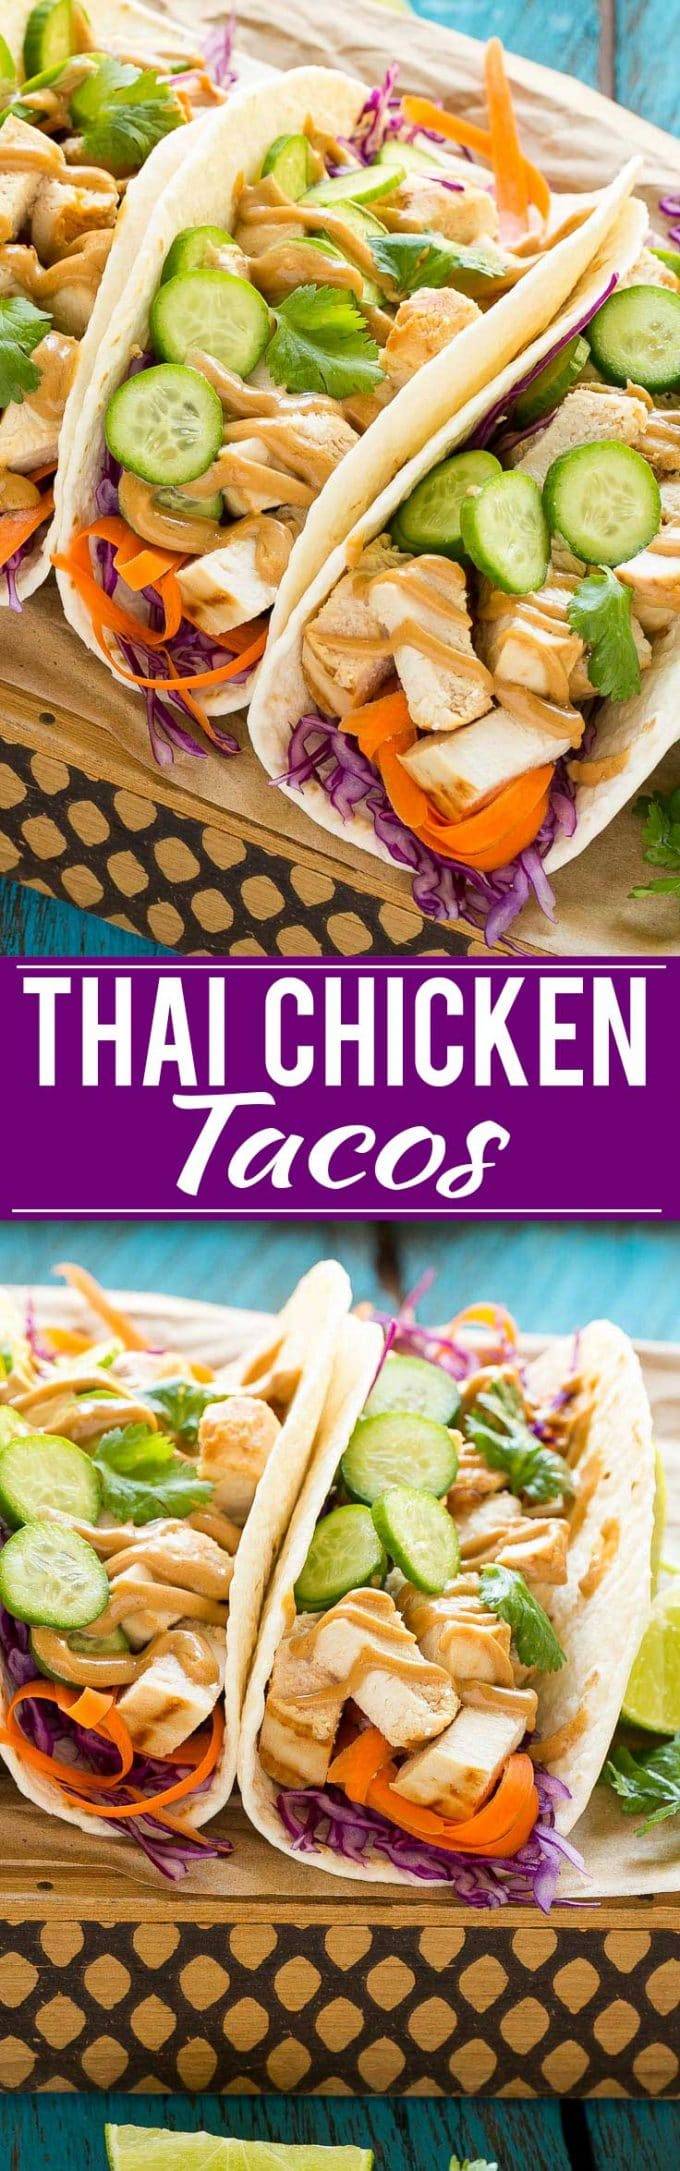 Thai Chicken Tacos Recipe | Thai Chicken Tacos with Peanut Sauce | Peanut Sauce | Thai Tacos